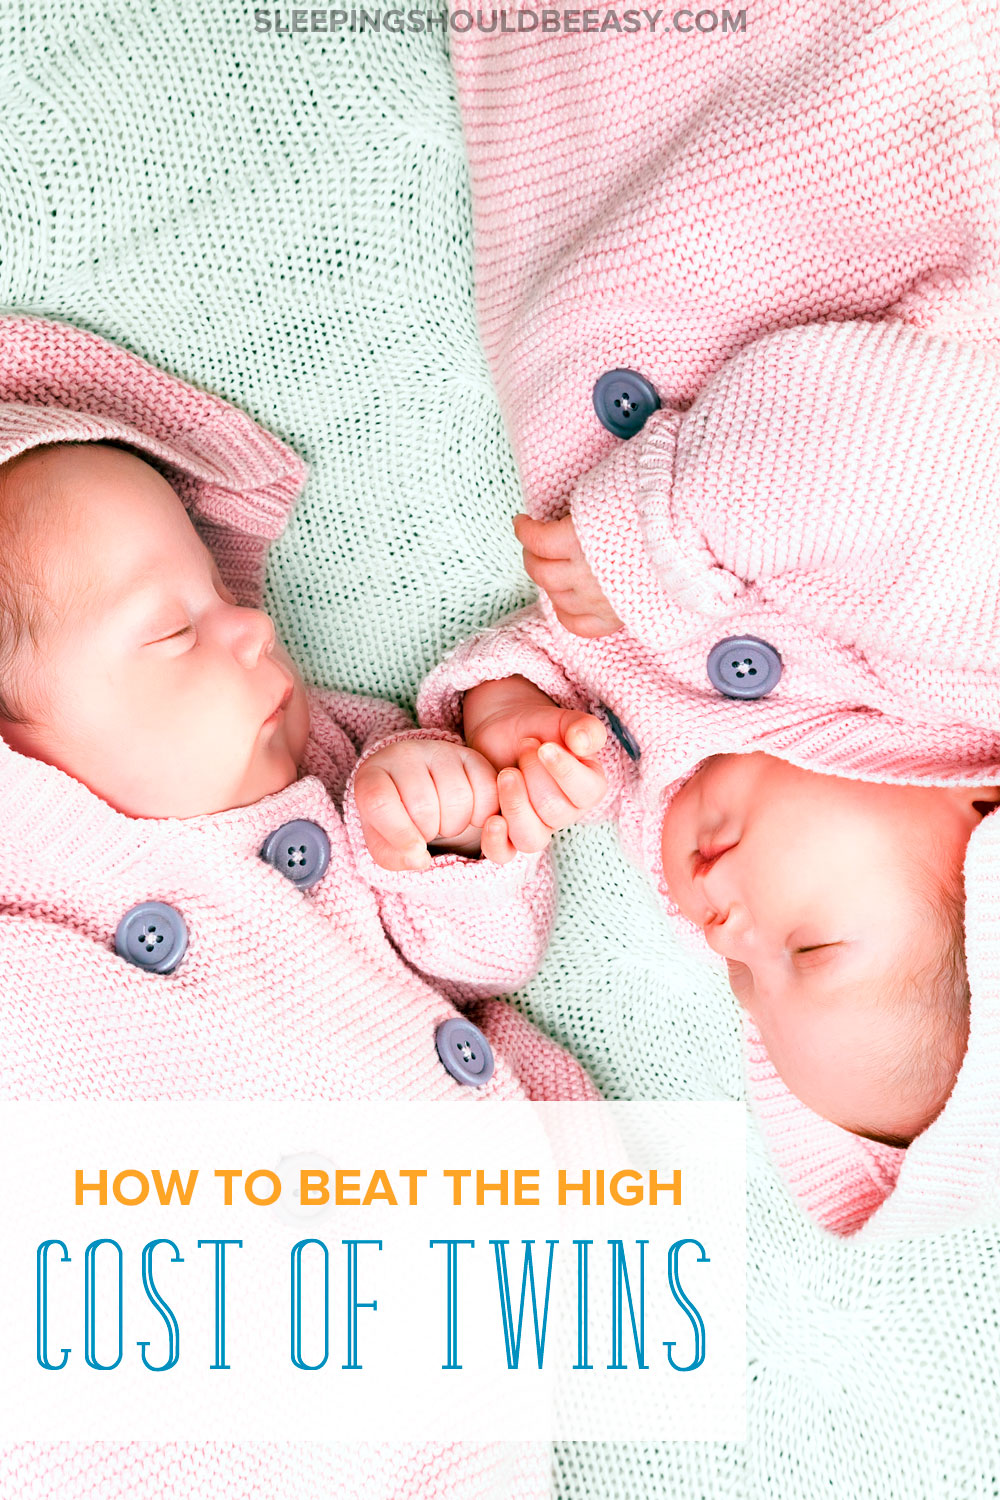 Things you should do to handle the cost of twins. If you just found out you're expecting twins, you might be worried about your finances and the cost of having twins. A must for any parent who wants to learn how to save money with twins!